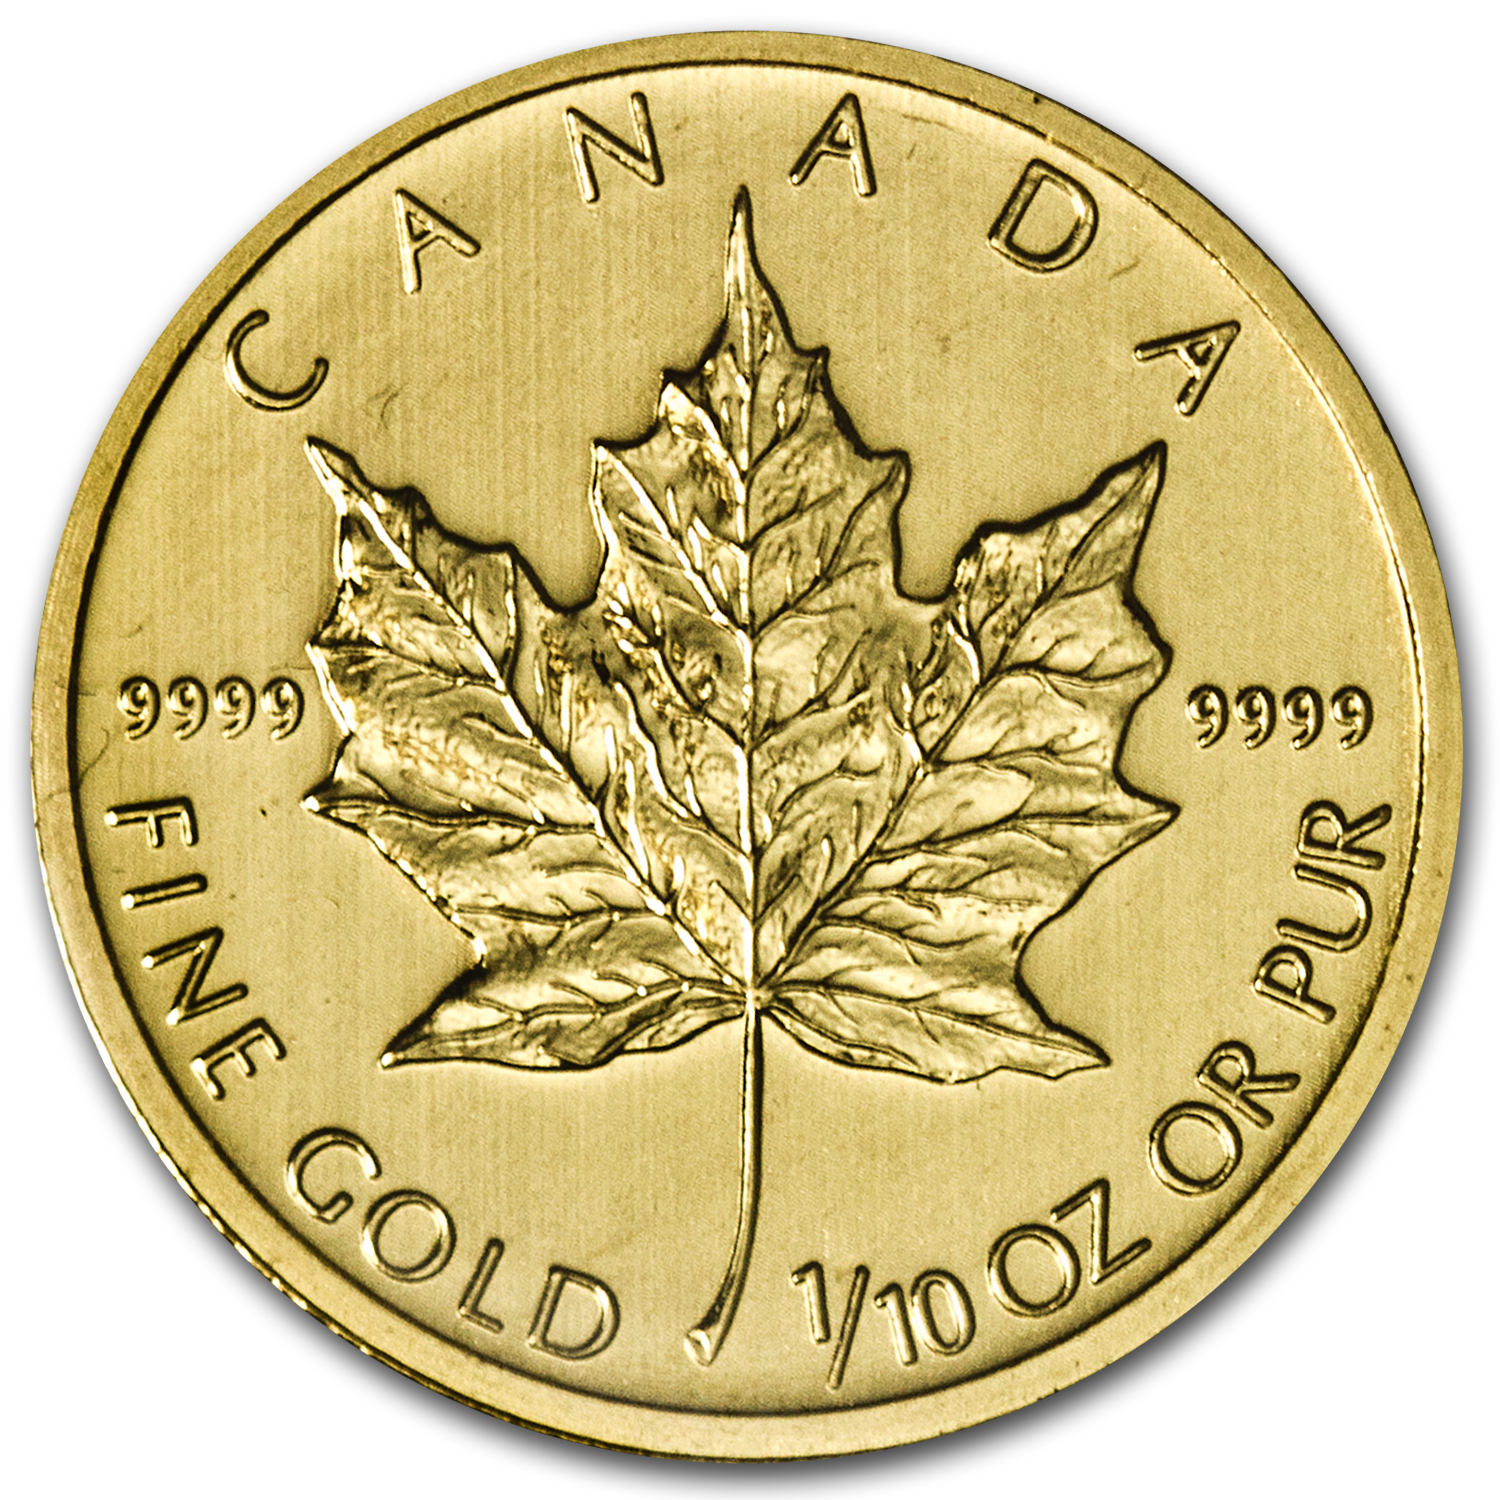 2013 Canada 1/10 oz Gold Maple Leaf BU